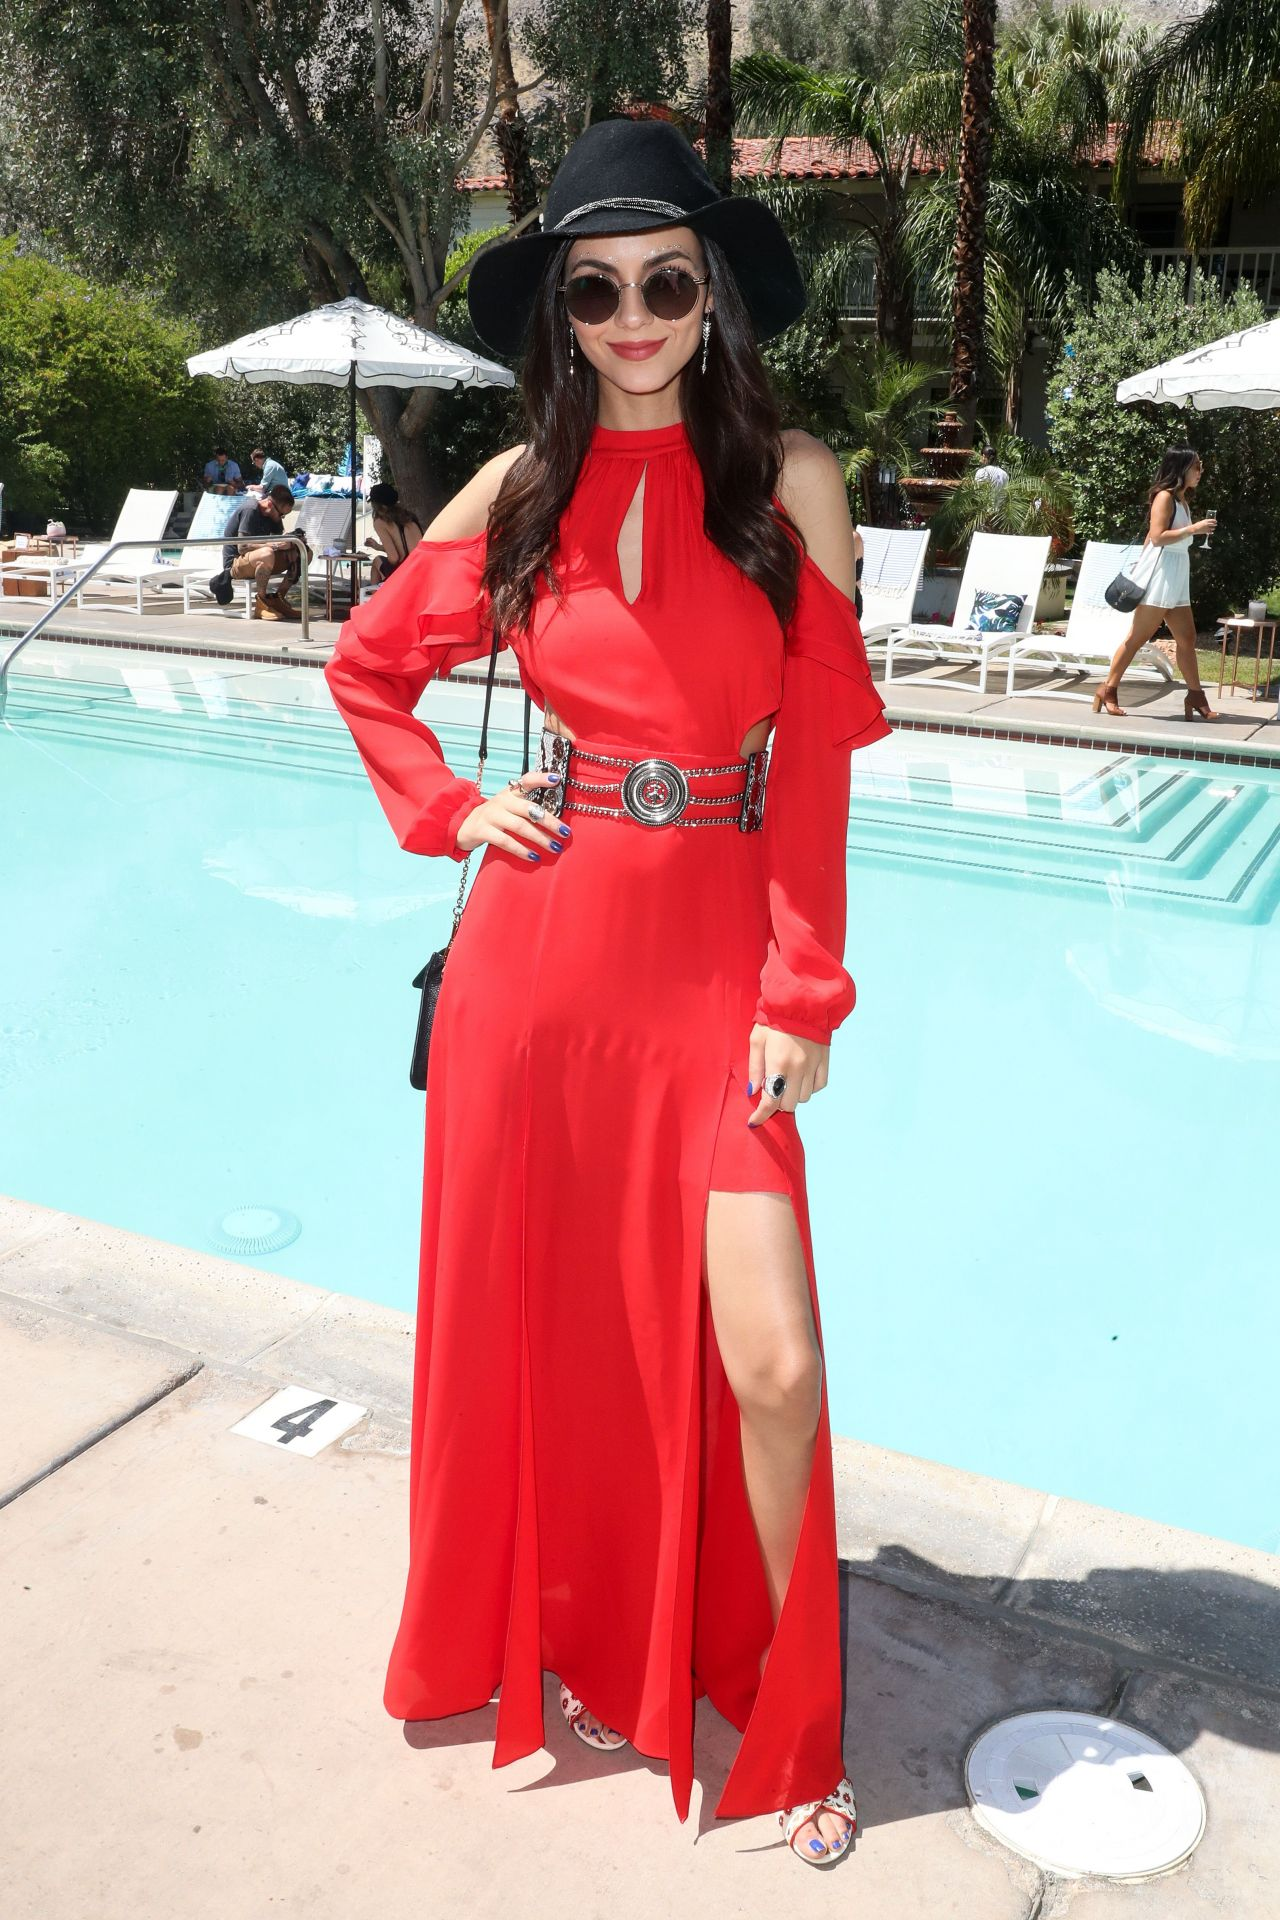 victoria-justice-at-popsugar-and-cfda-s-brunch-coachella-in-palm-springs-4-15-2017-4